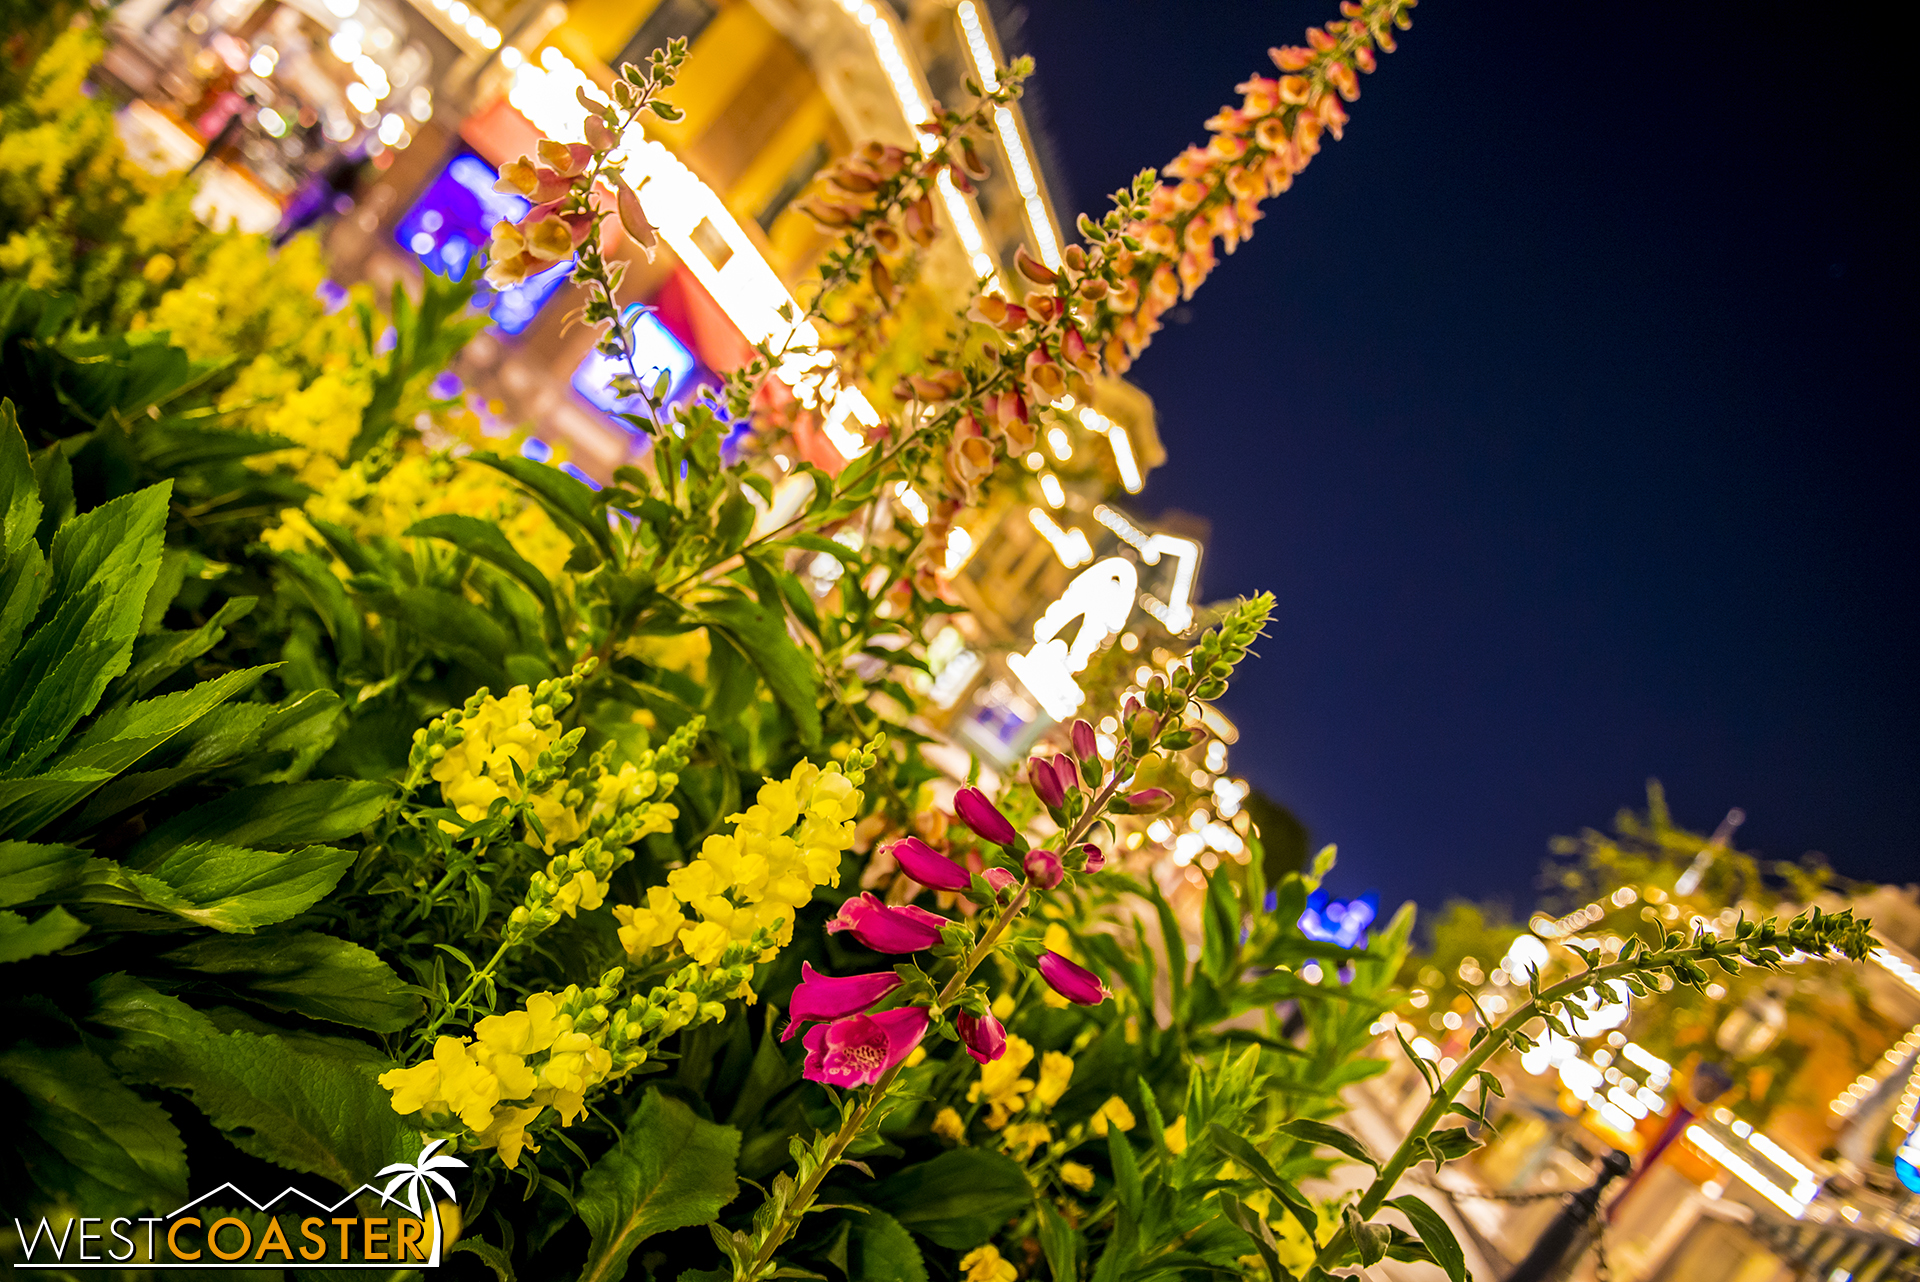 Gotta hand it to the Disneyland horticulturists. They can do some great work!